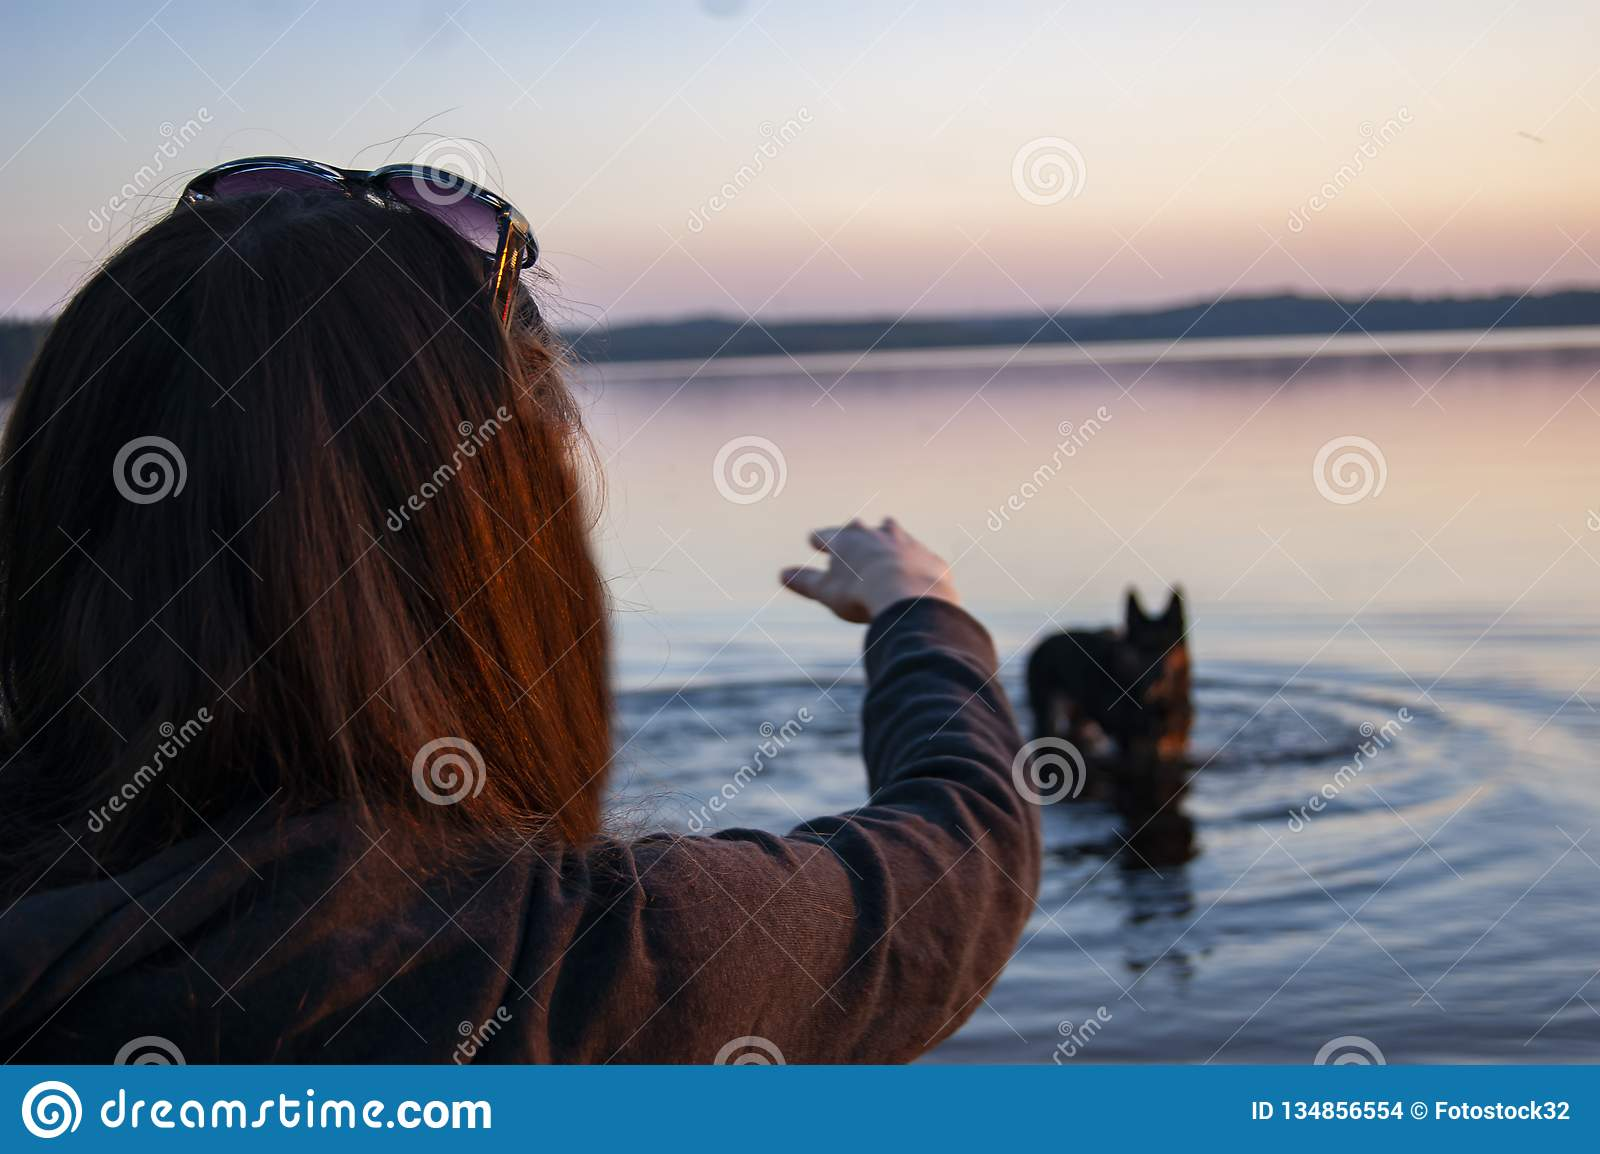 The girl on the lake playing with a dog